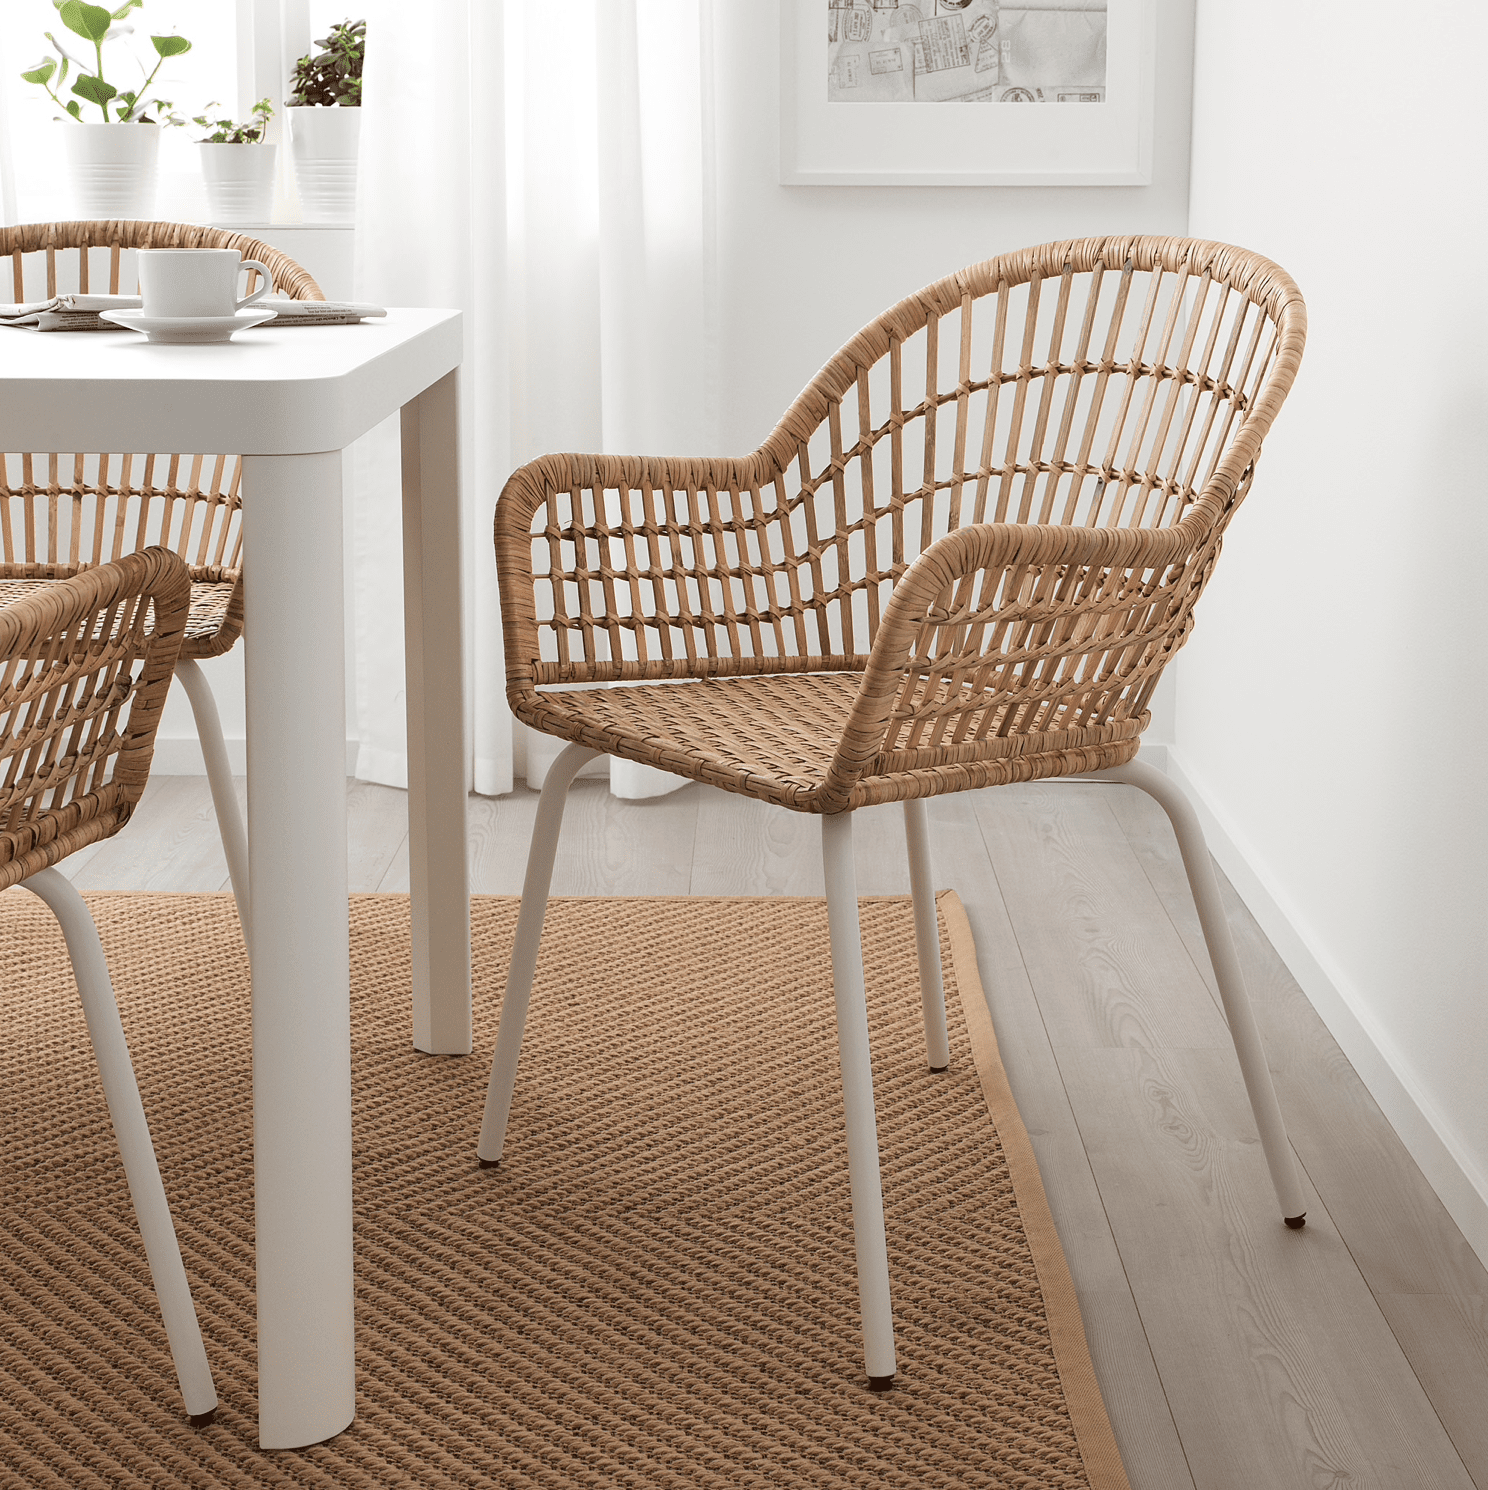 Wondrous Best Rattan Products From Ikea Cheap Rattan Ikea Finds Gmtry Best Dining Table And Chair Ideas Images Gmtryco